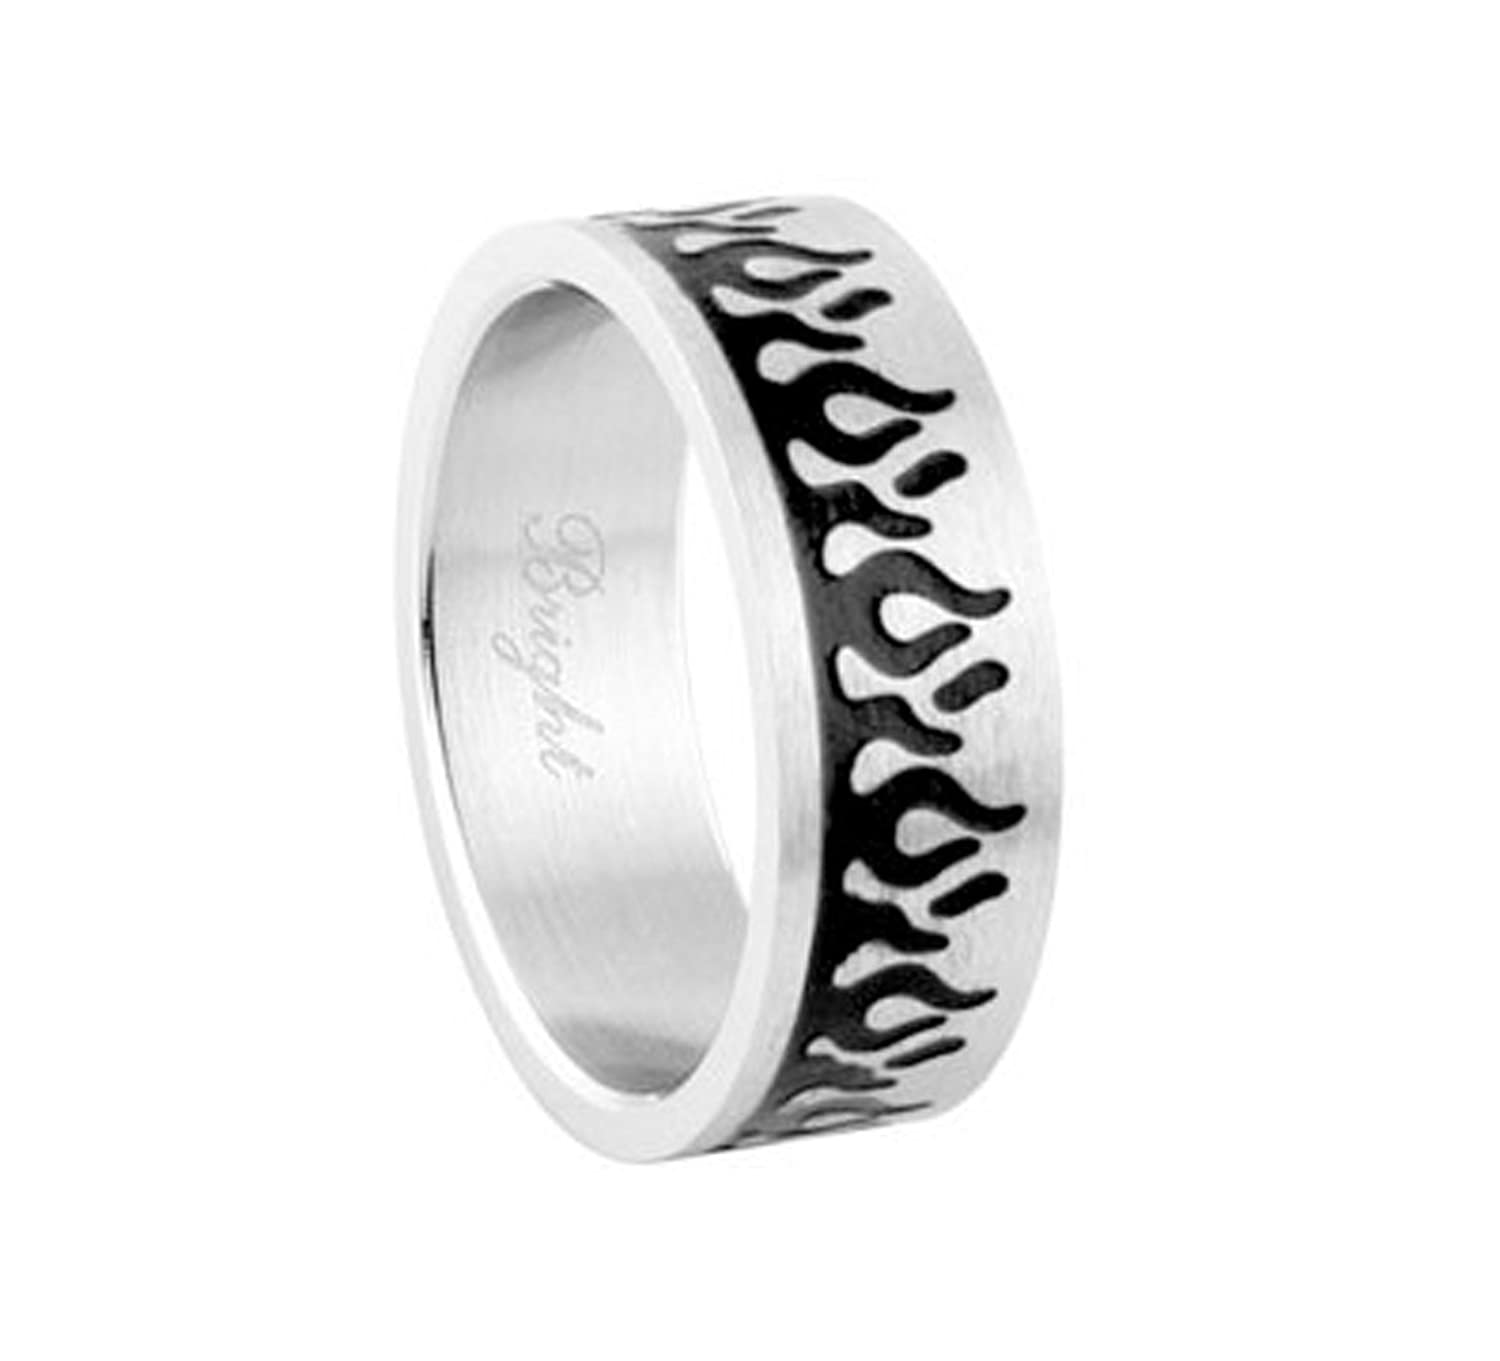 Mens Biker Rings Black Flames Ring Gothic Jewelry For Men Outfit Accessories Chopper Motorcycle Fire Size 8 13